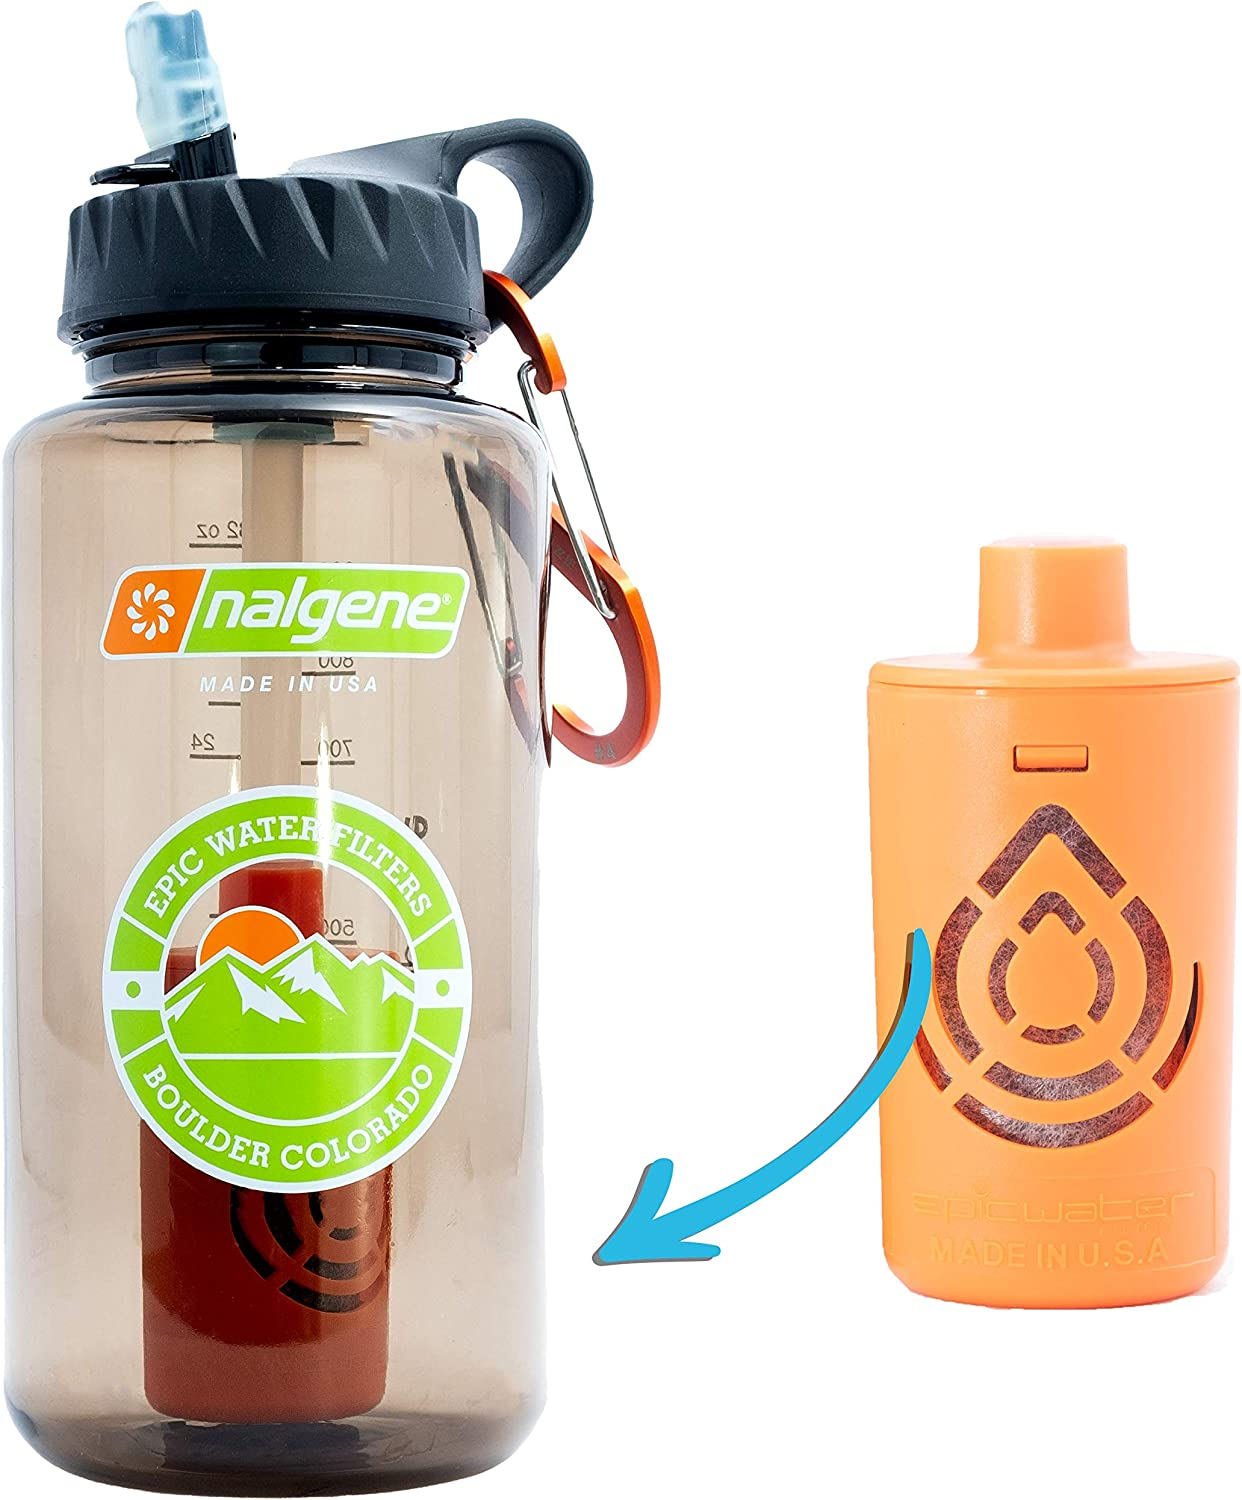 Giardia rated water filter.